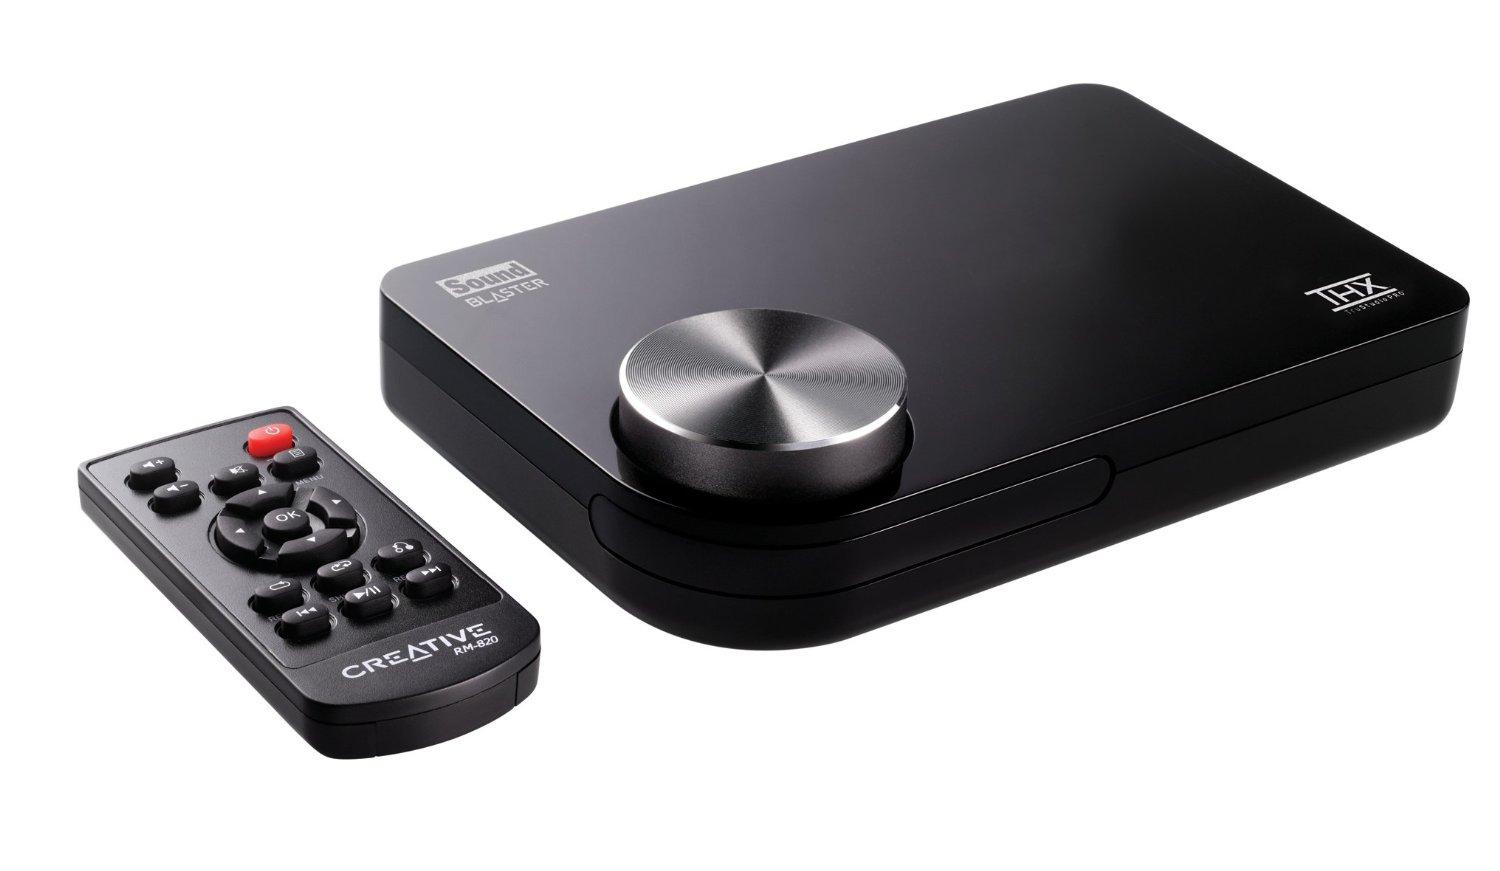 Звукова карта CREATIVE X-Fi Surround 5.1 Pro, USB, 5.1